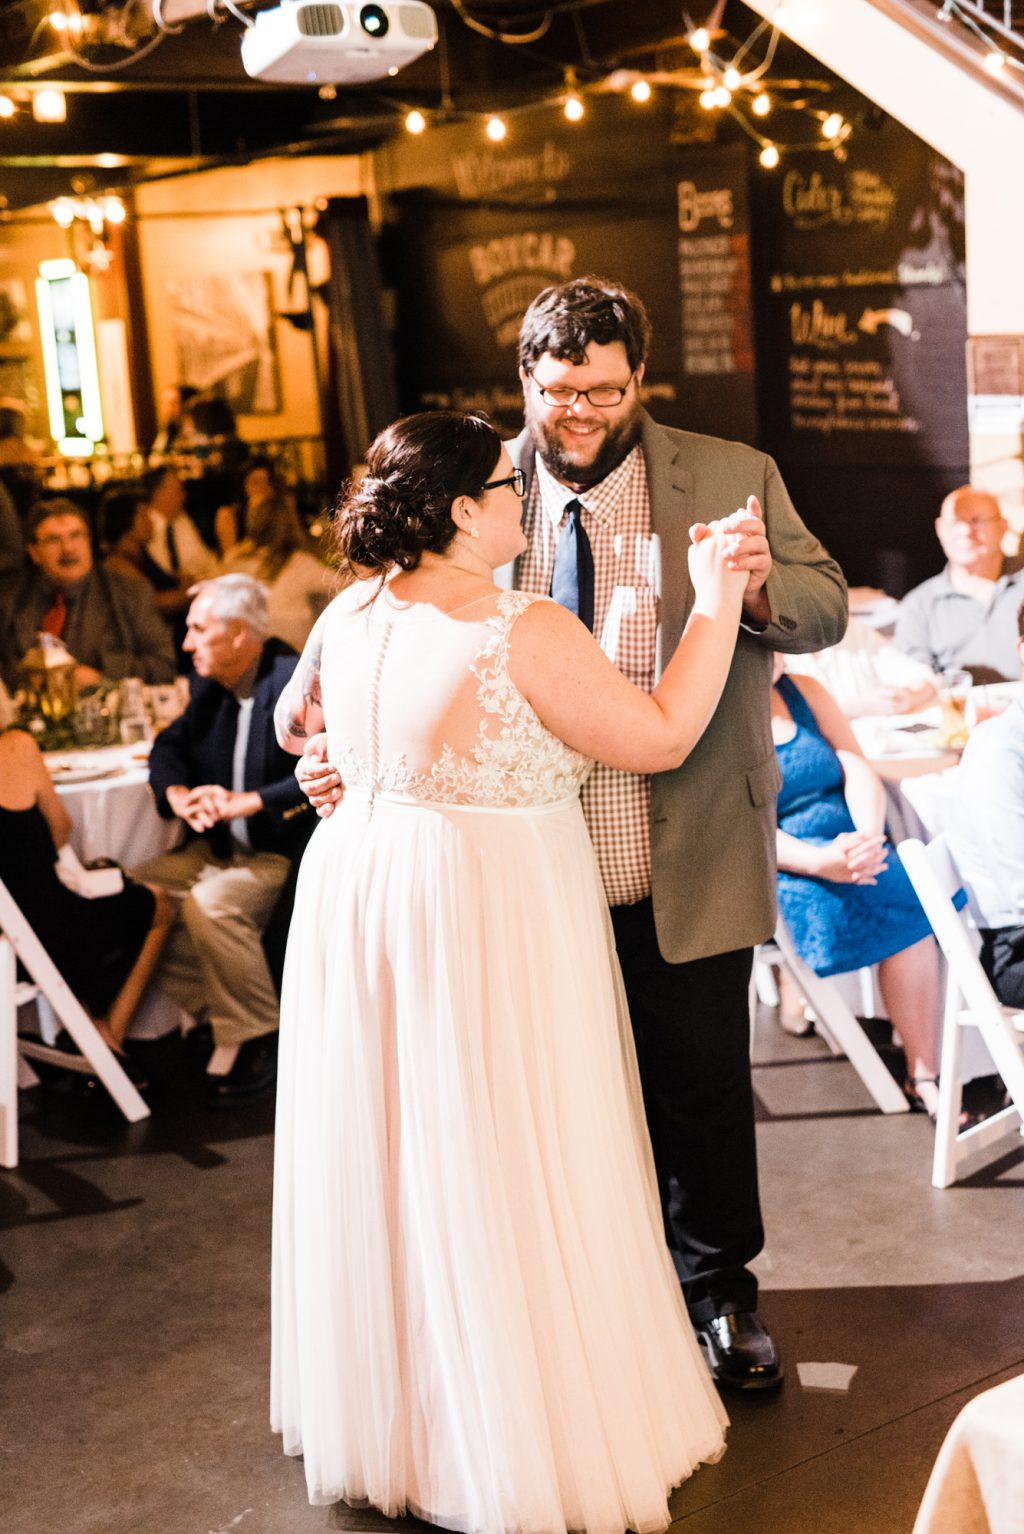 haley-richter-photo-west-chester-summer-wedding-boxcar-brewery-174